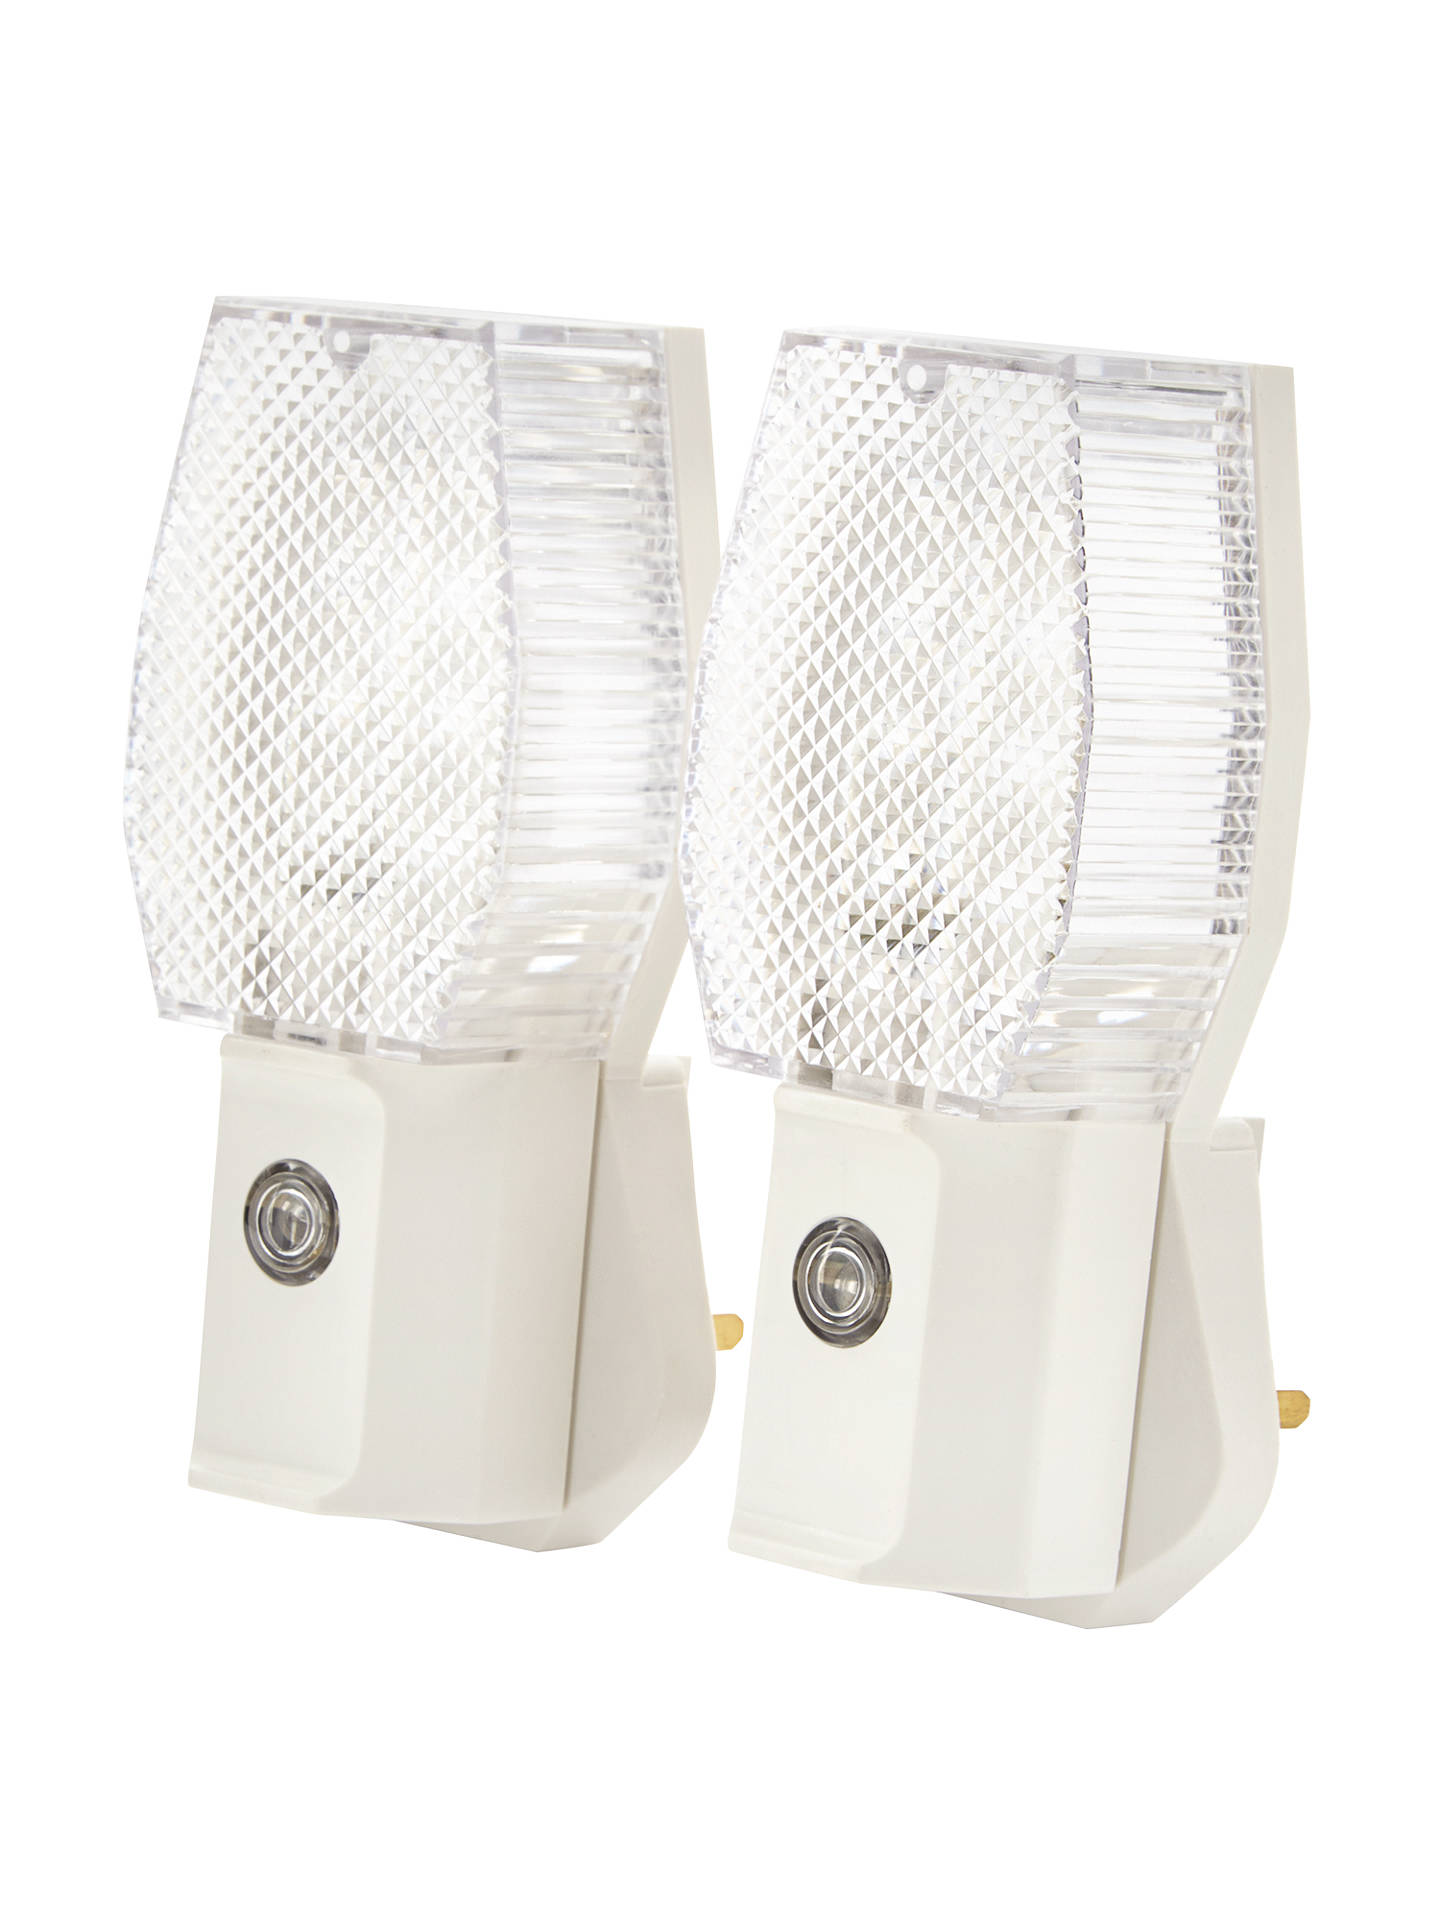 John Lewis Automatic Dusk to Dawn Plug-in Night Light, Pack of 2 at